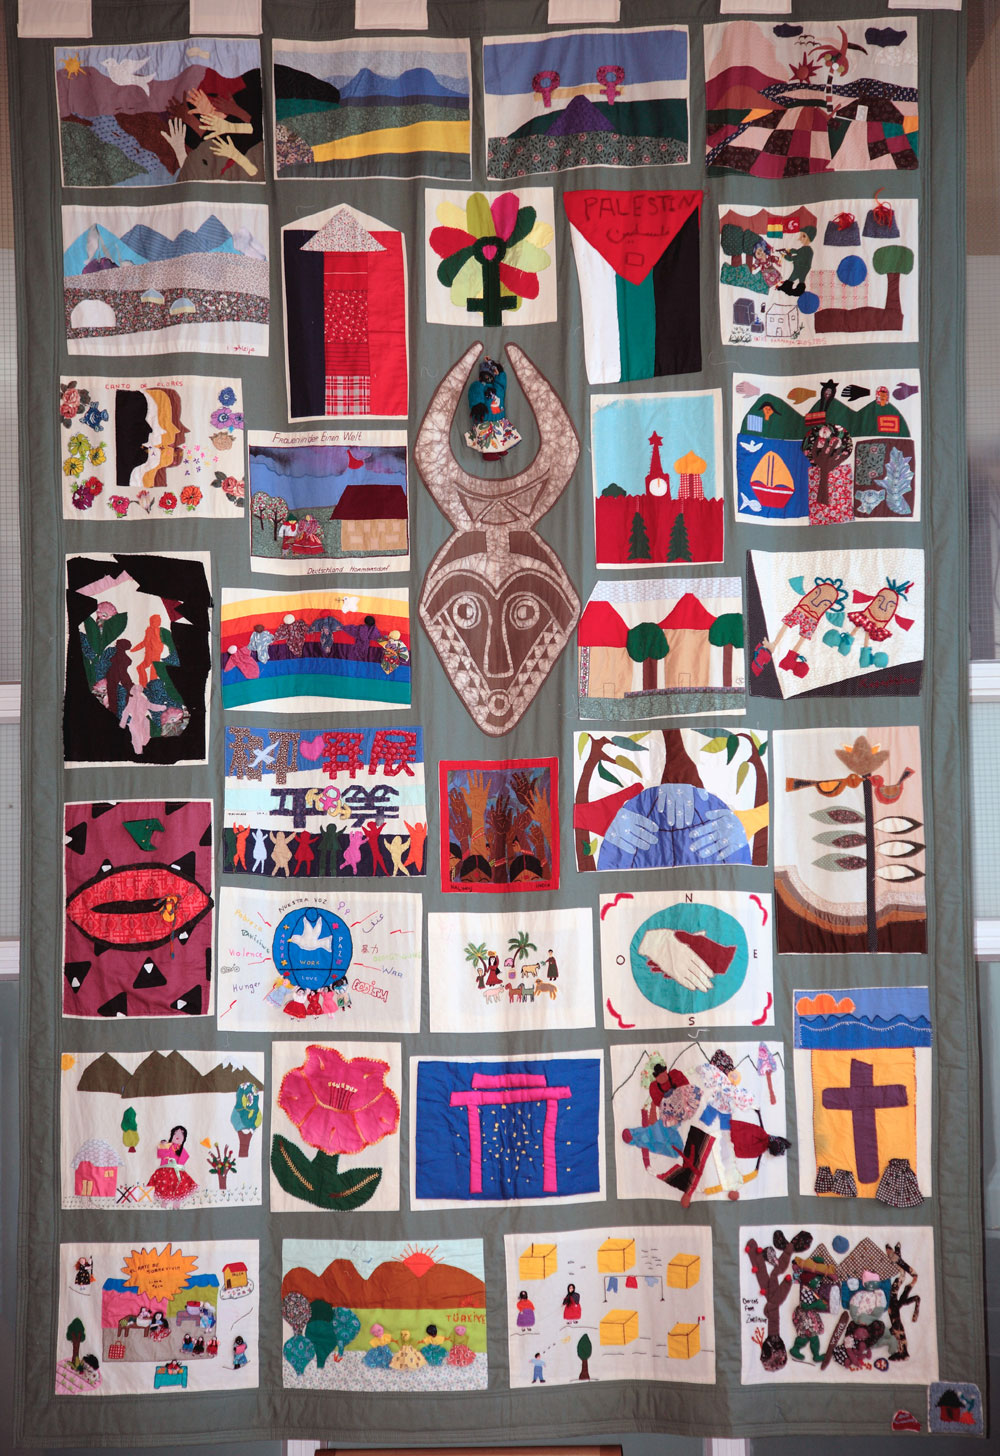 'A Quilt for the world', by Women in One World. (Photo: Martin Melaugh)